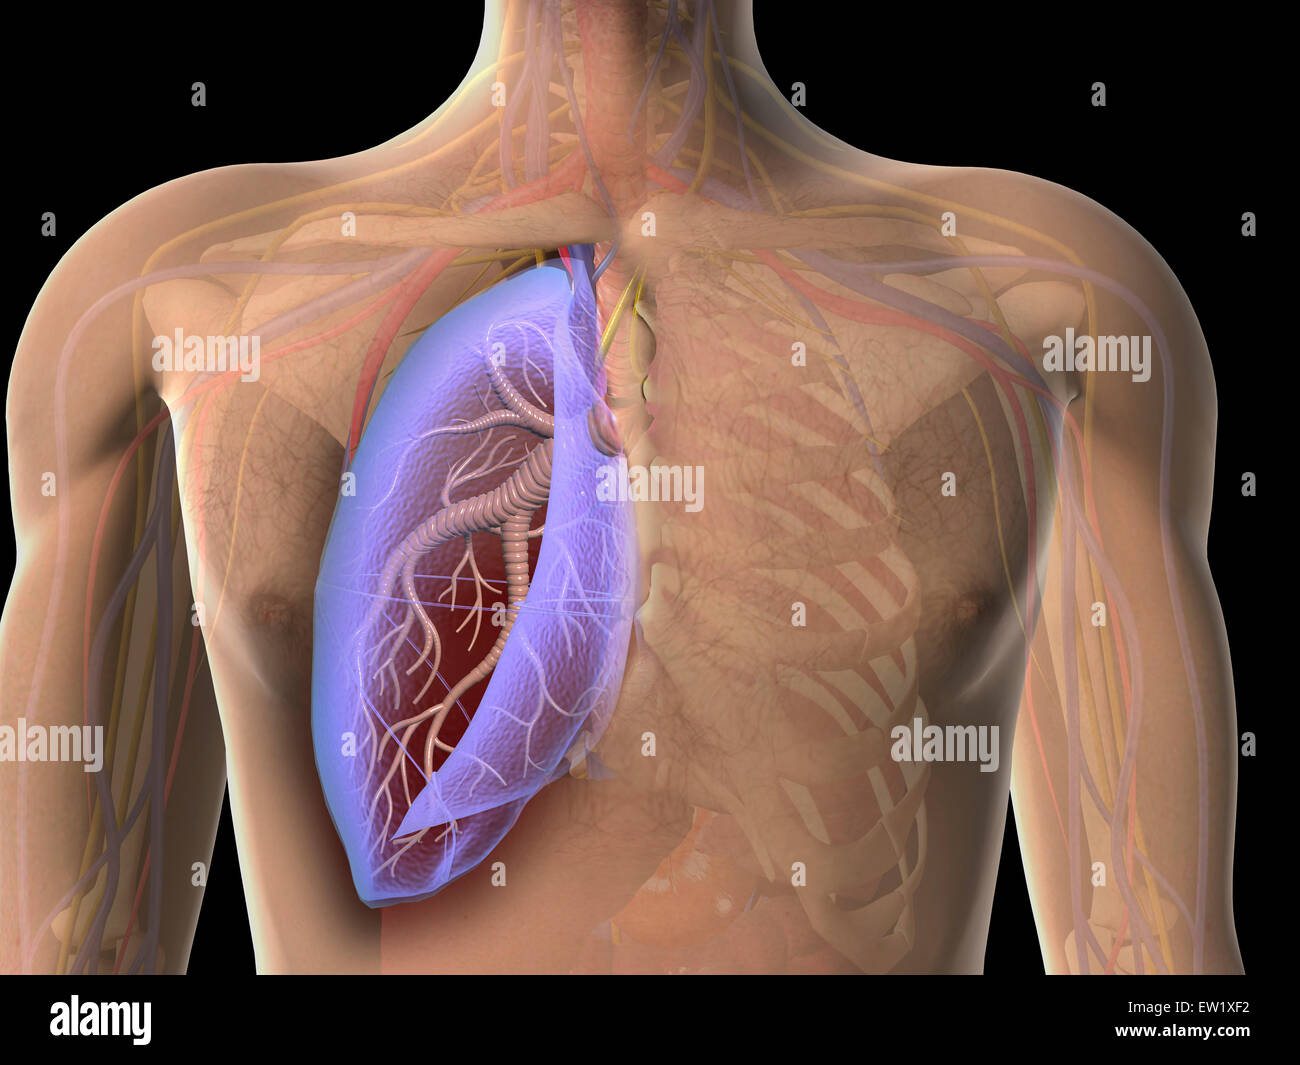 Transparent view of human chest showing the lung. - Stock Image